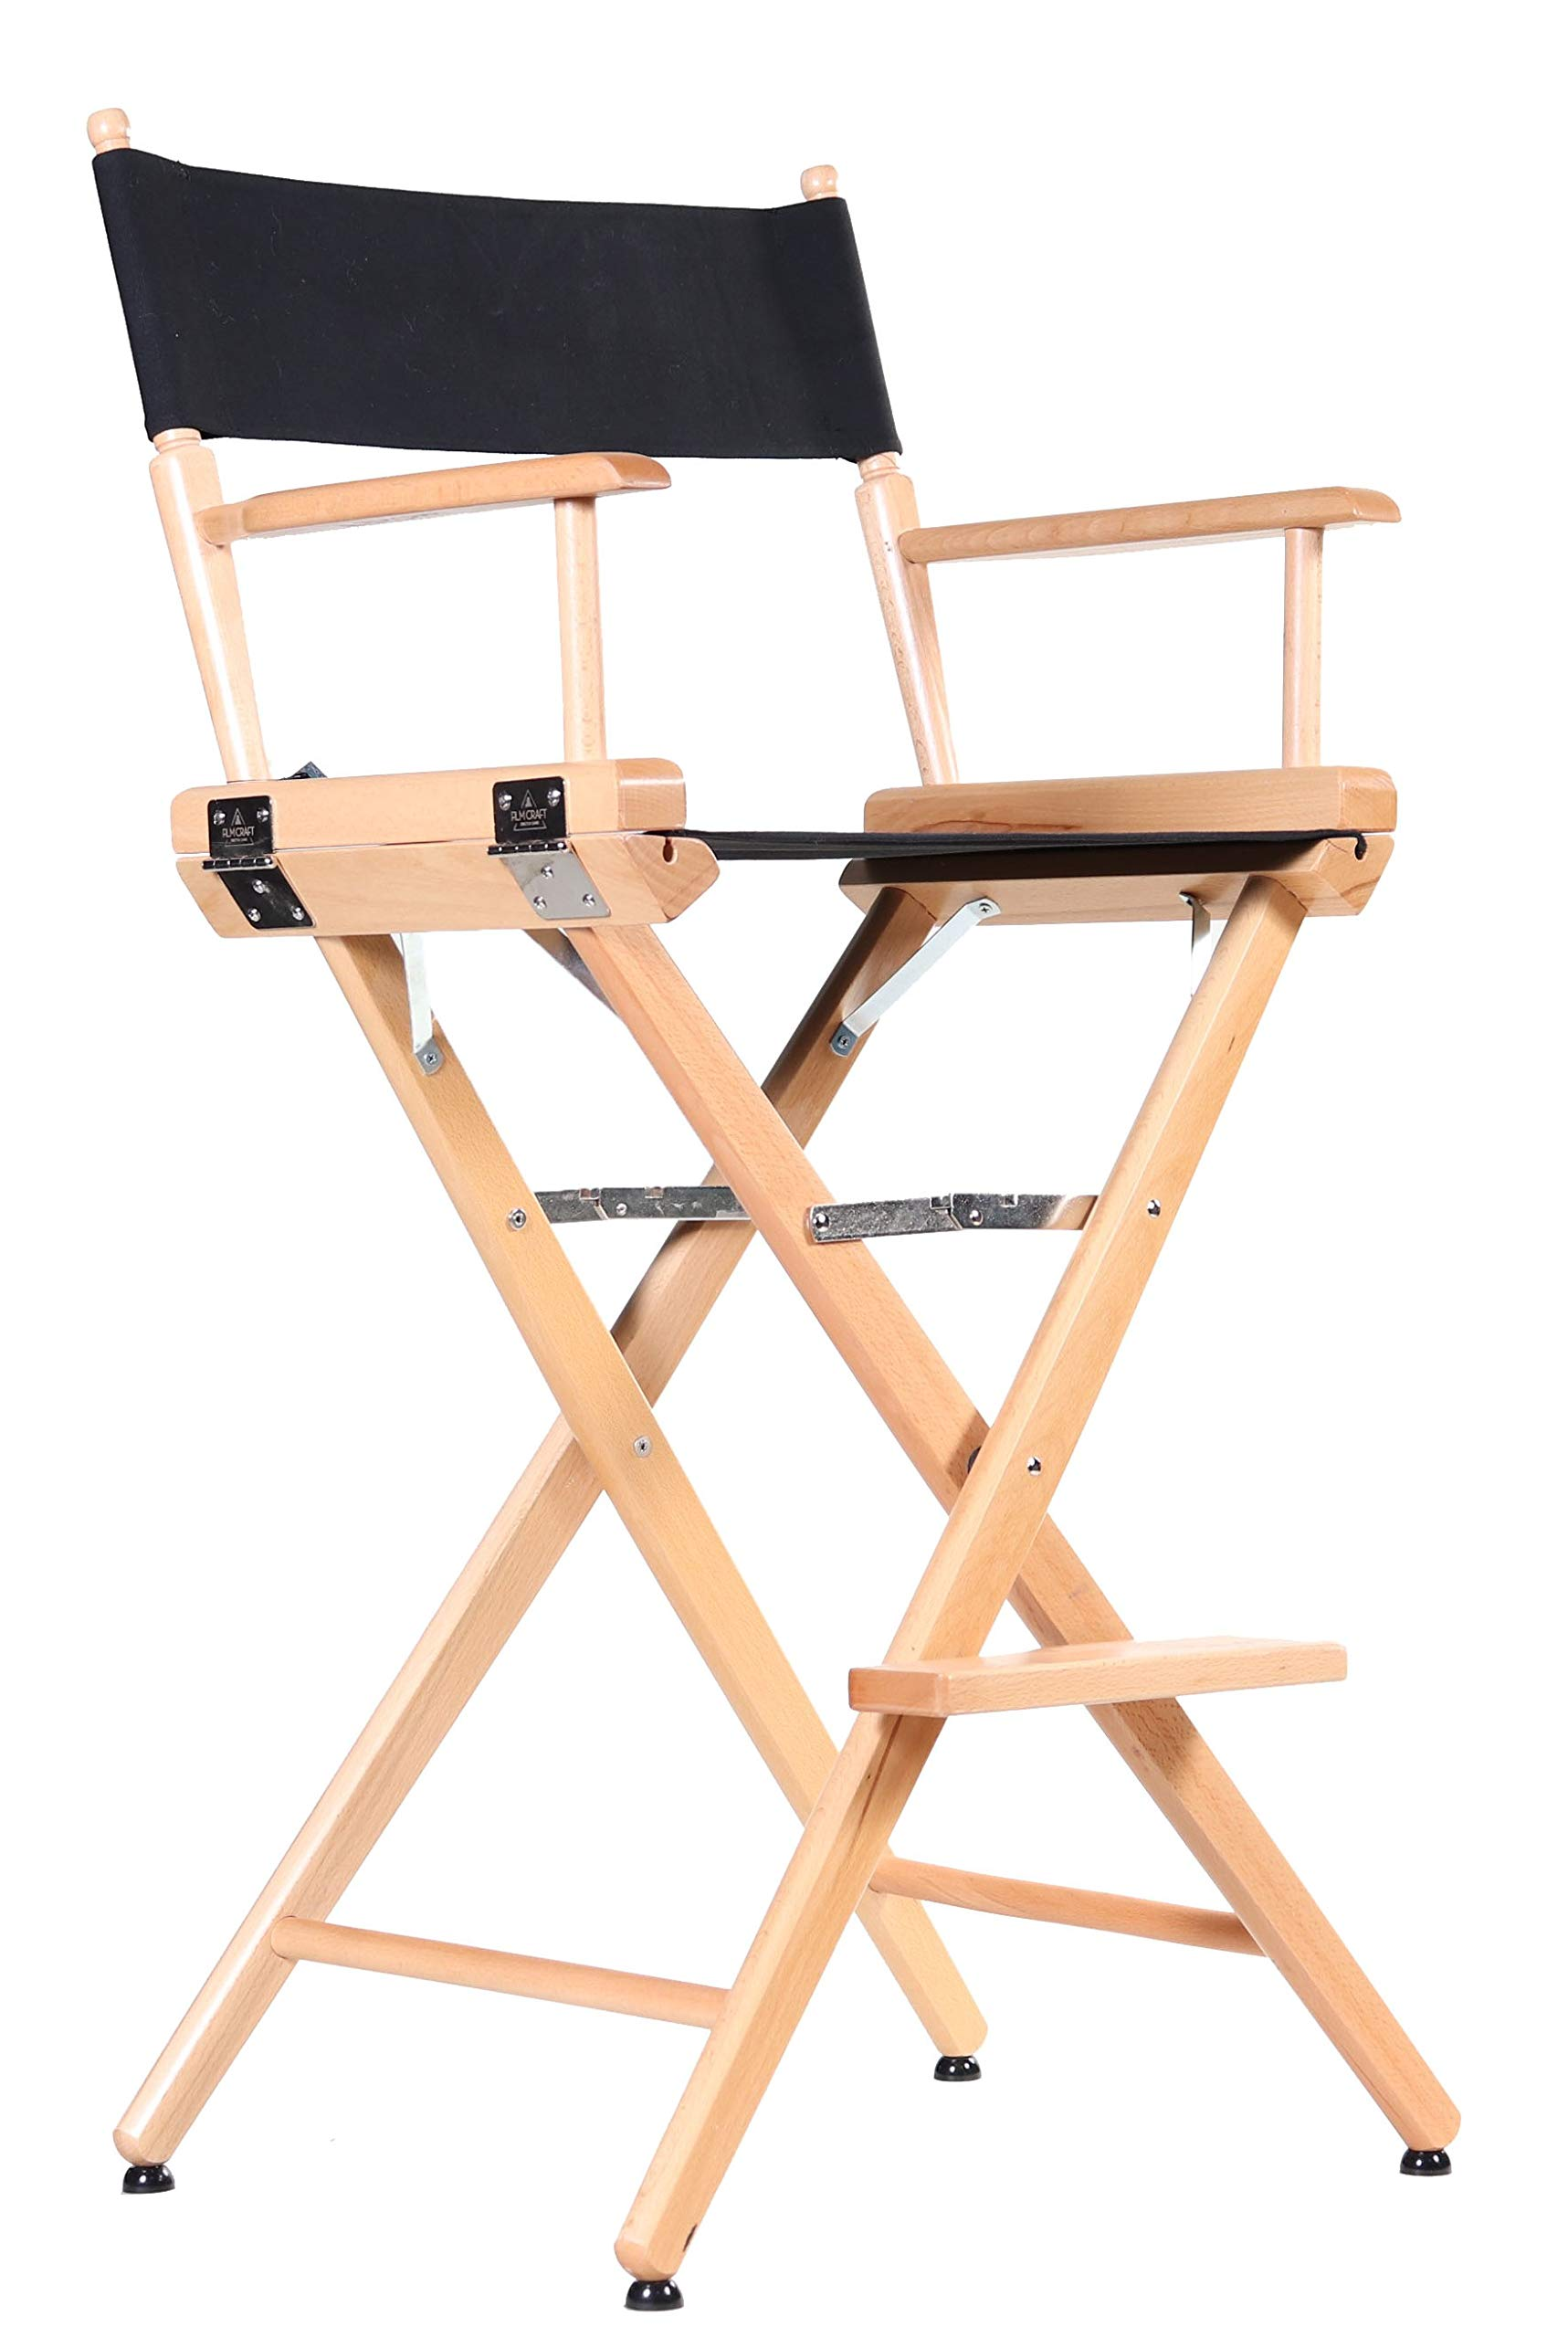 Professional Grade Studio Director's Chairs (30'' bar Height, Natural Finish, Black Canvas) by Filmcraft